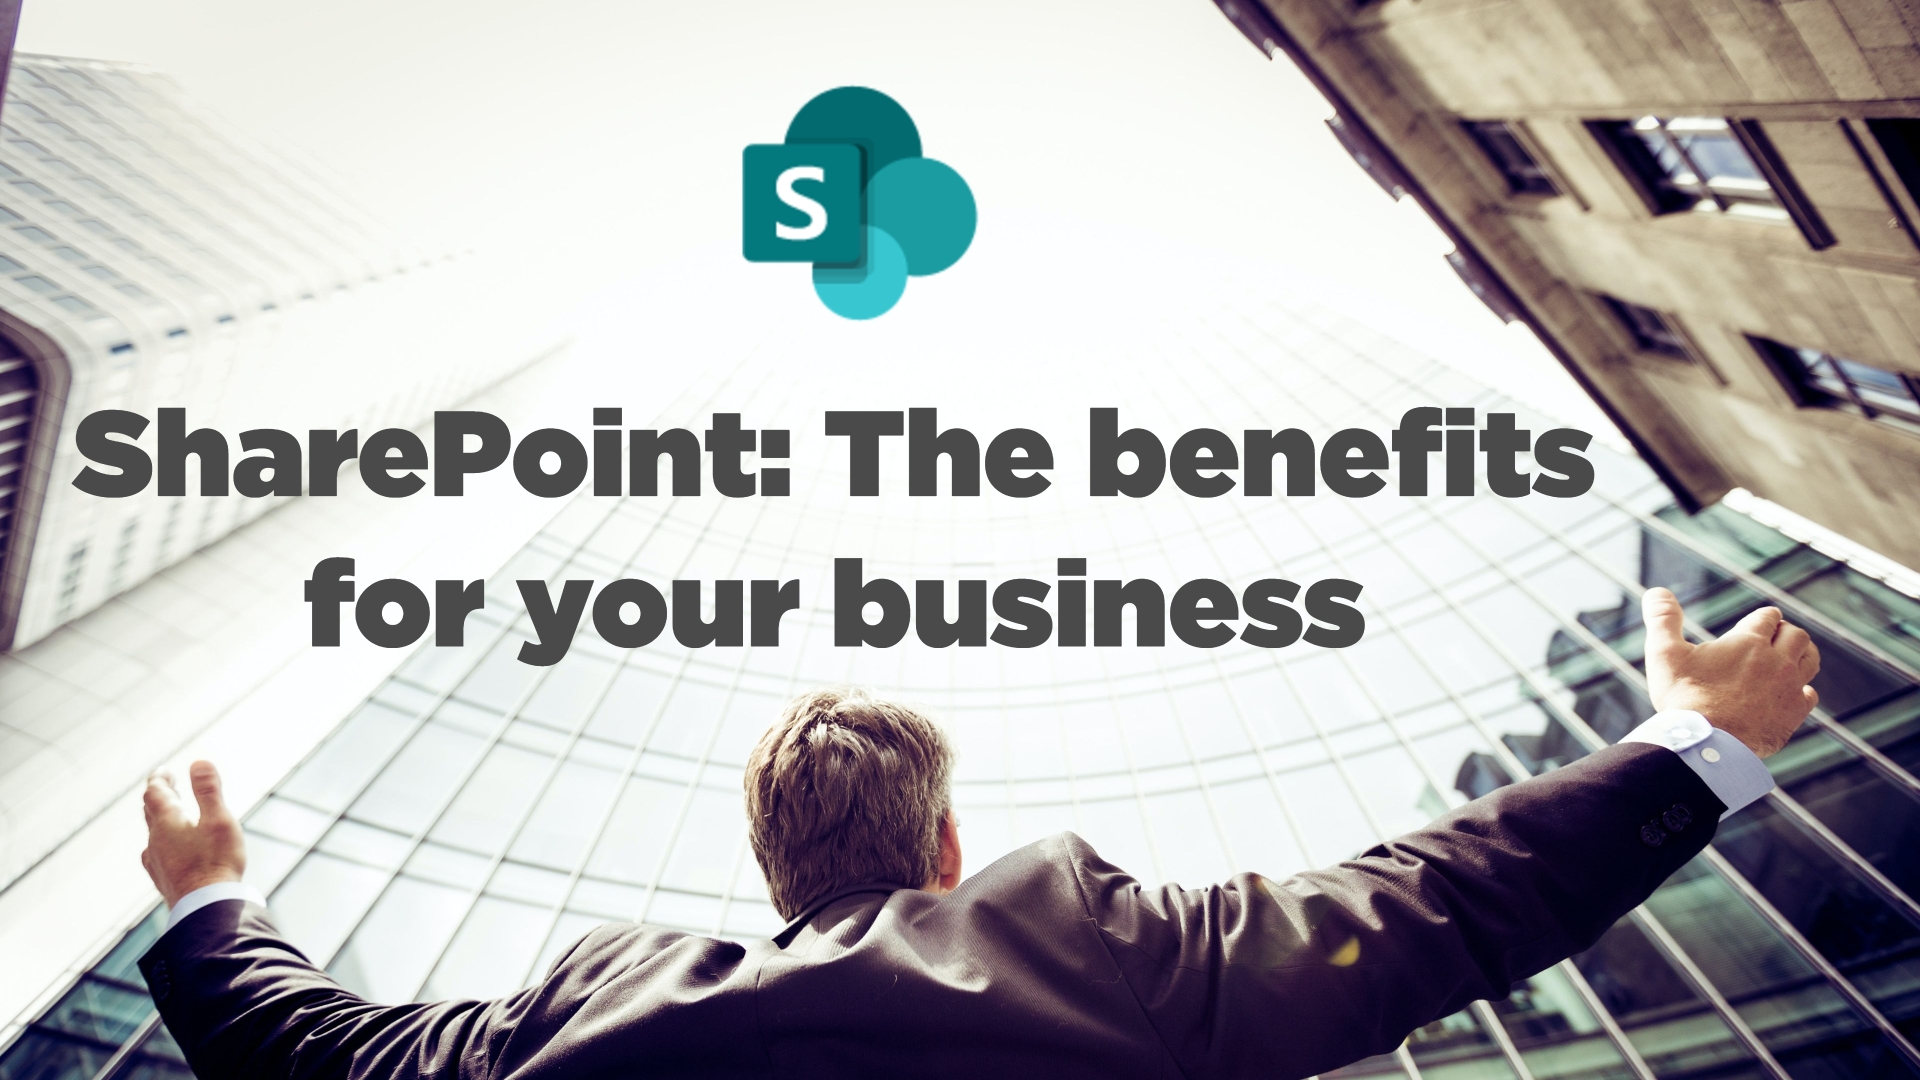 SharePoint, Managed IT Services